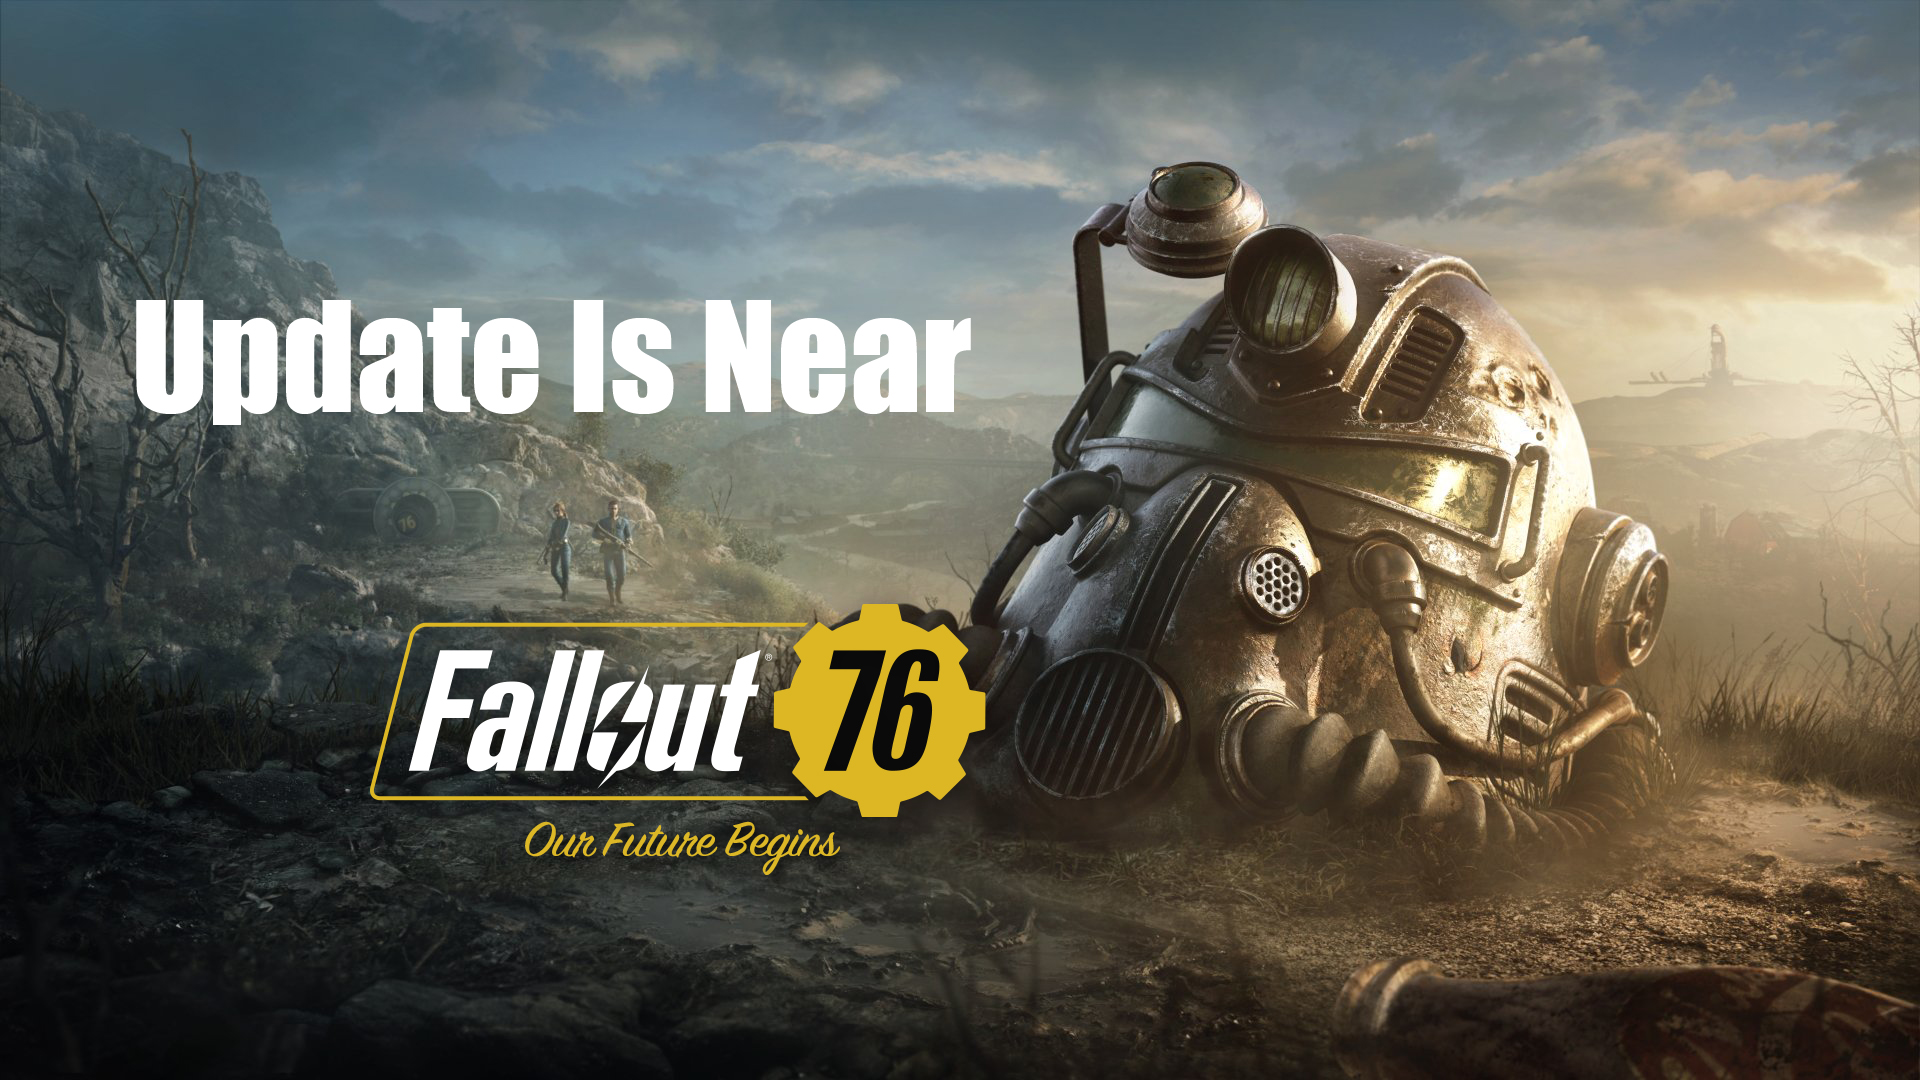 Updates Of Fallout 76 Is Coming In December